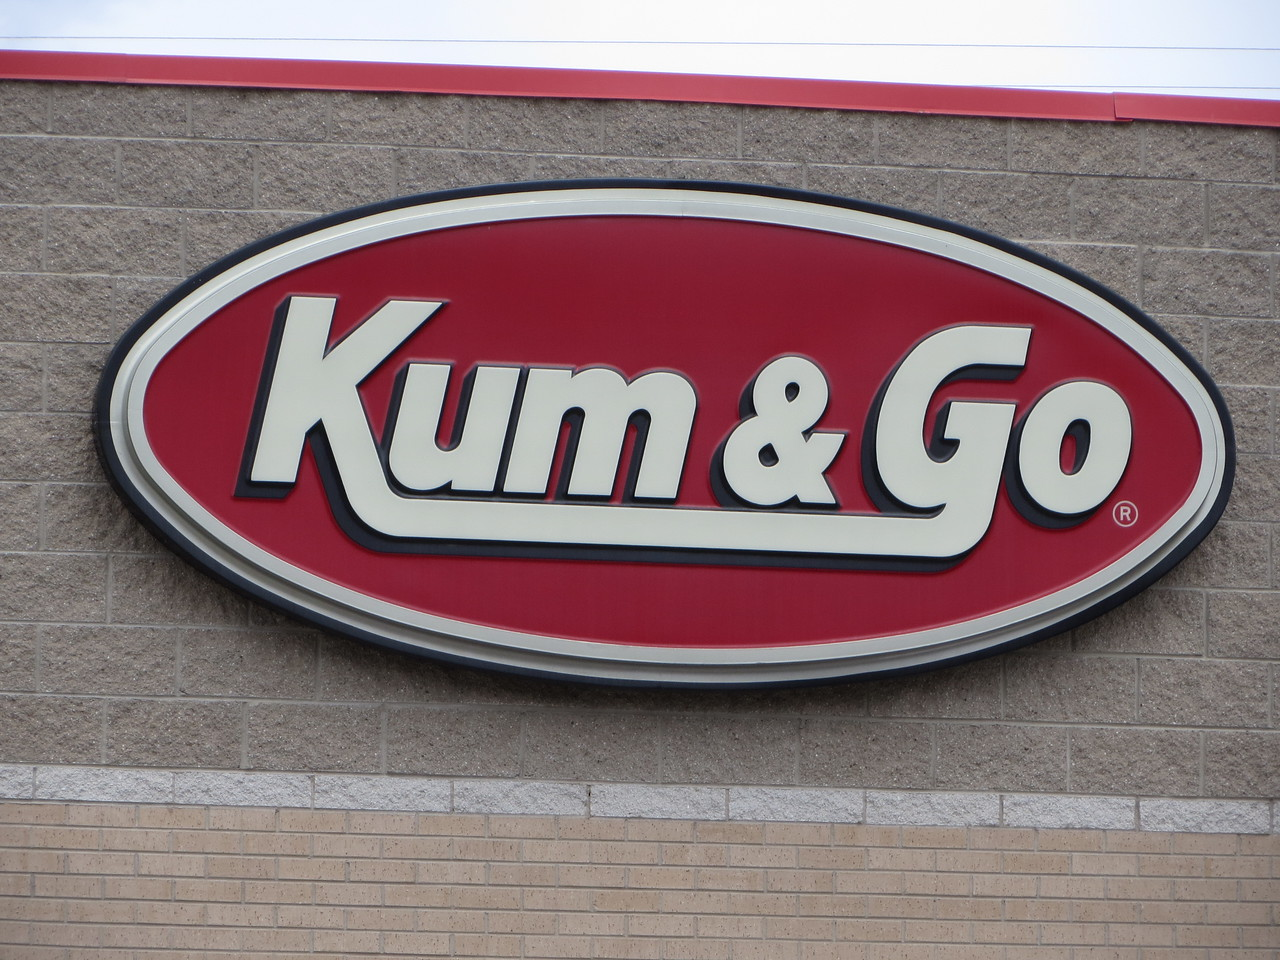 Day 3 (363 miles):  There's two commercial staples of the west that I love to see.  The first is the 'Sinclair' station with the dinosaur; the other is the poorly named 'Kum and Go'.  The 13 year old in me giggles every time he sees it.